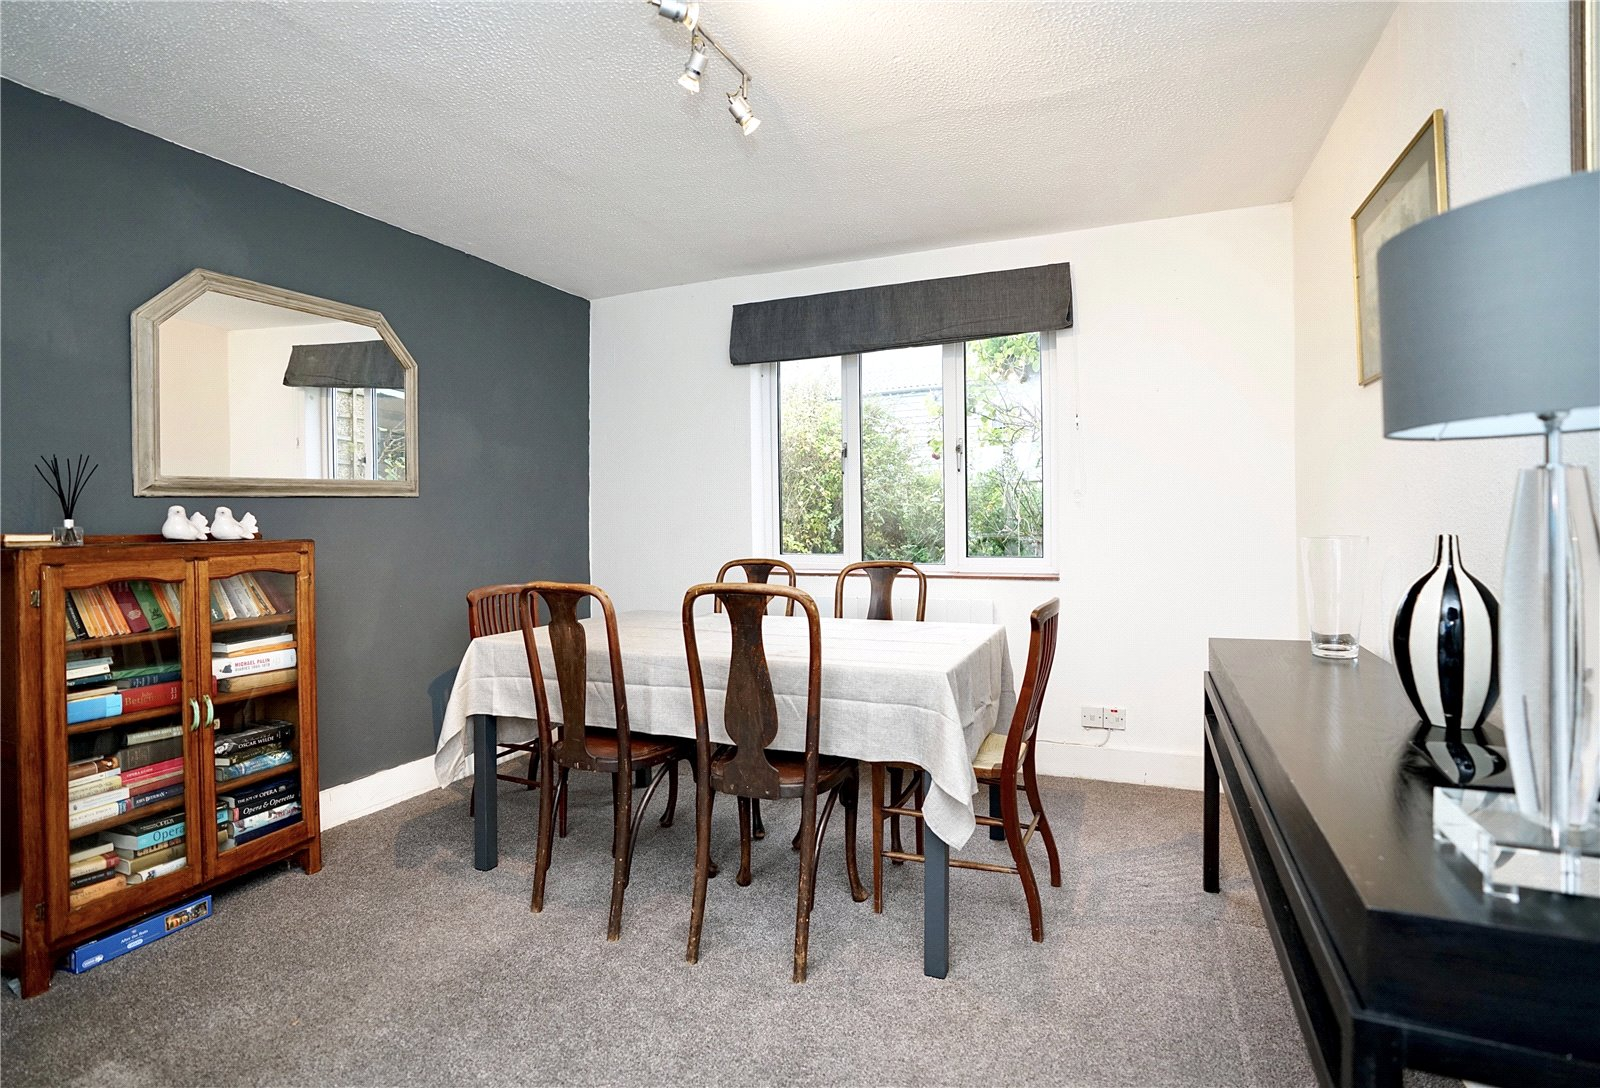 4 bed house for sale in Honeydon, Bedford 6